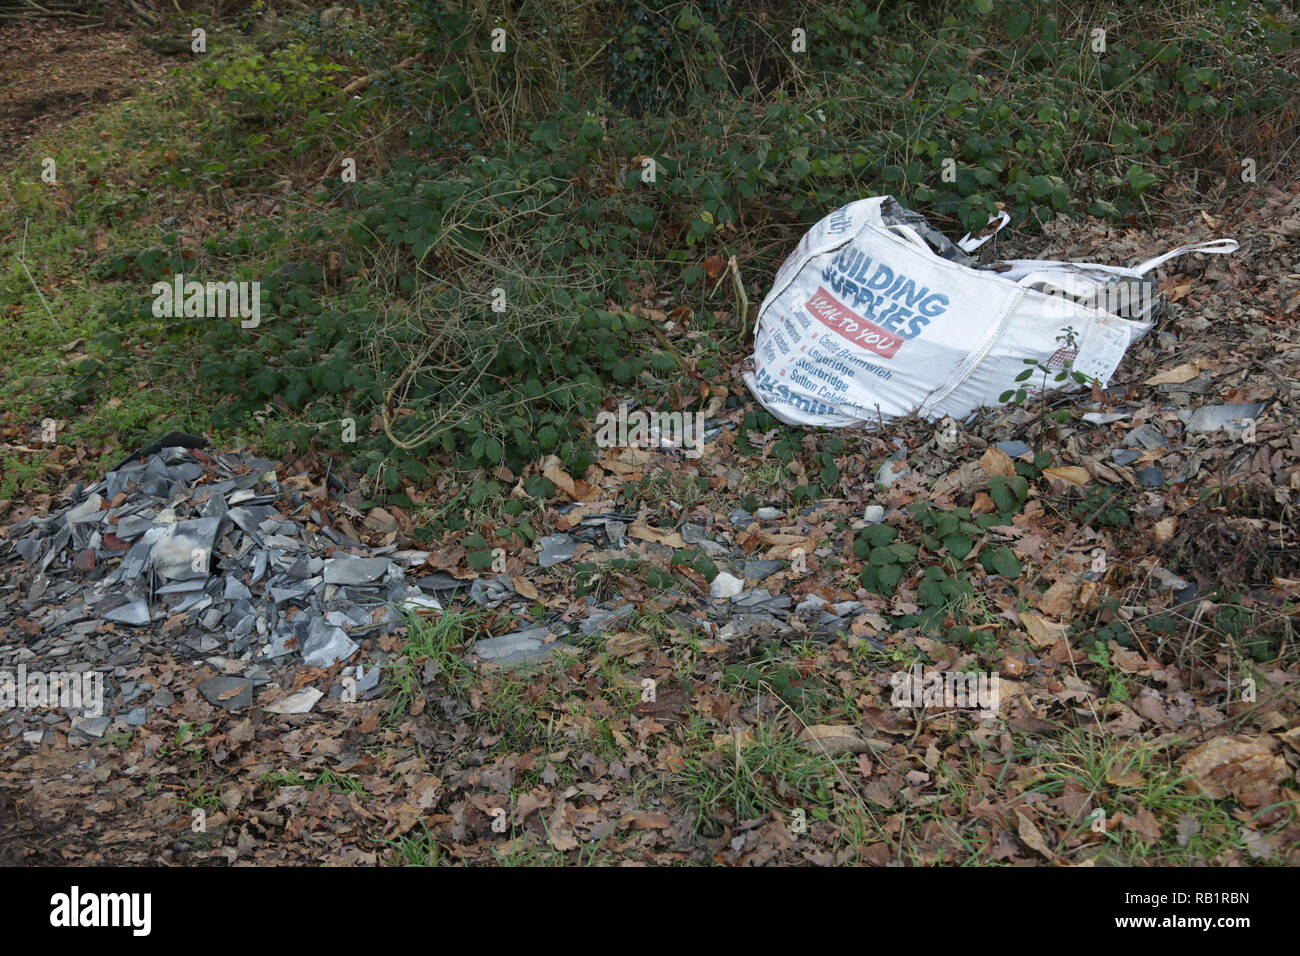 Builders waste dumped in a British country lane. - Stock Image